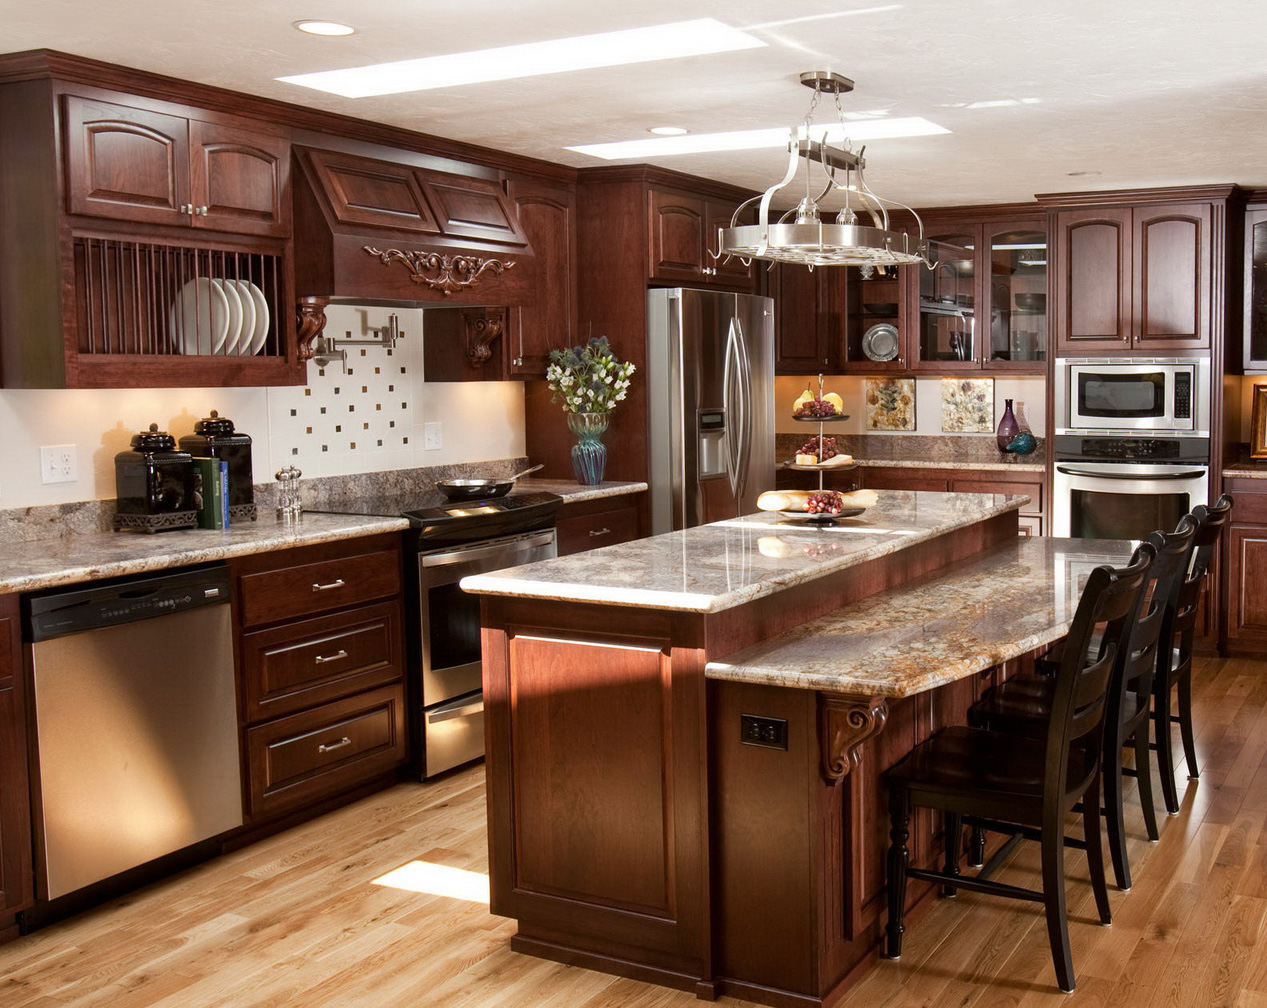 Magnificent Wood Kitchen CabiStyles 1267 x 1008 · 434 kB · jpeg